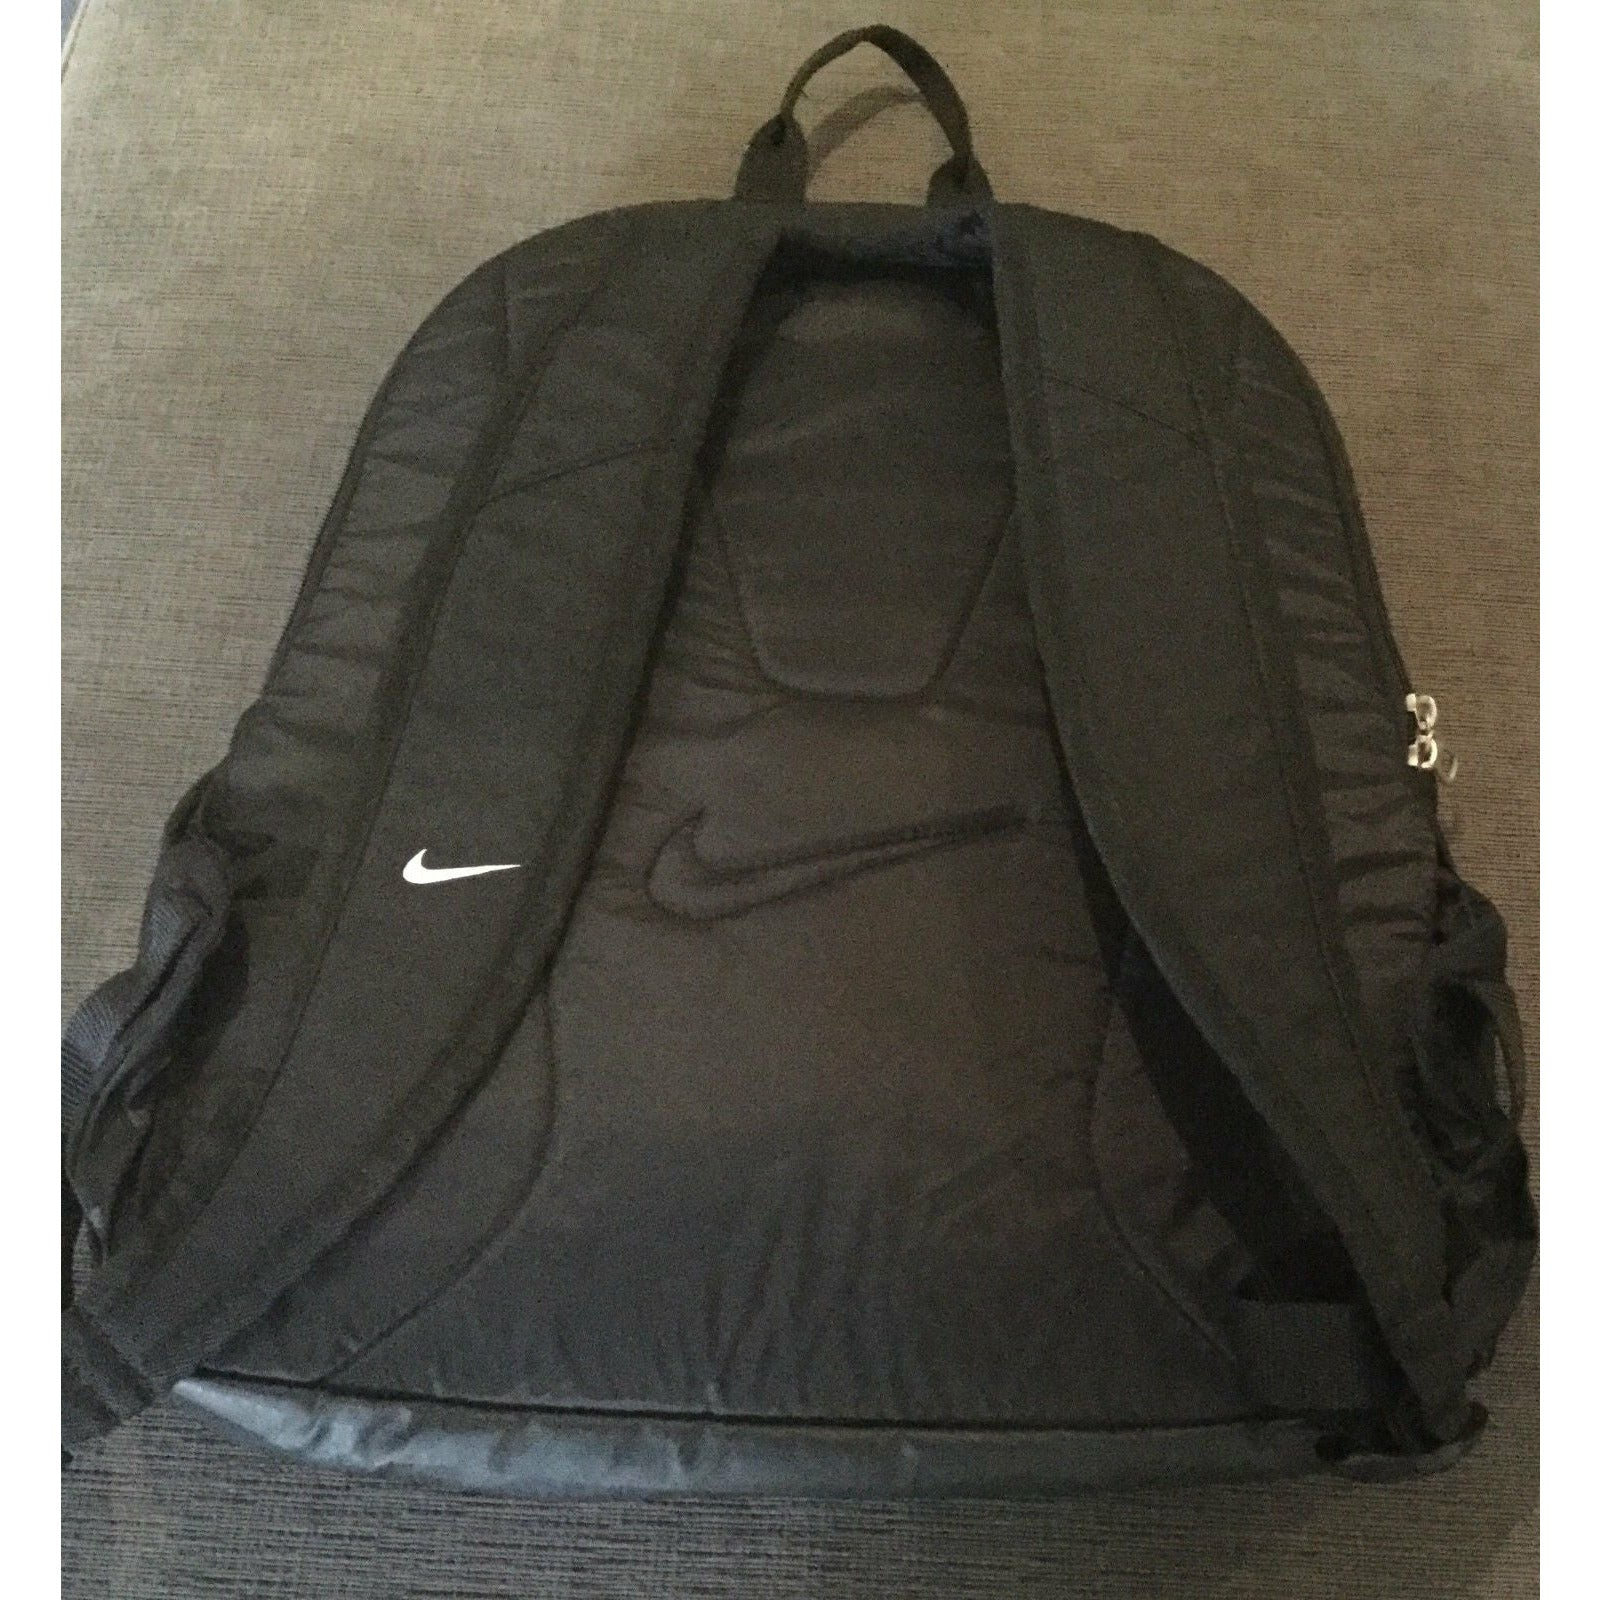 New Nike back pack, no tags, never used 17.5 inches x 15 inches